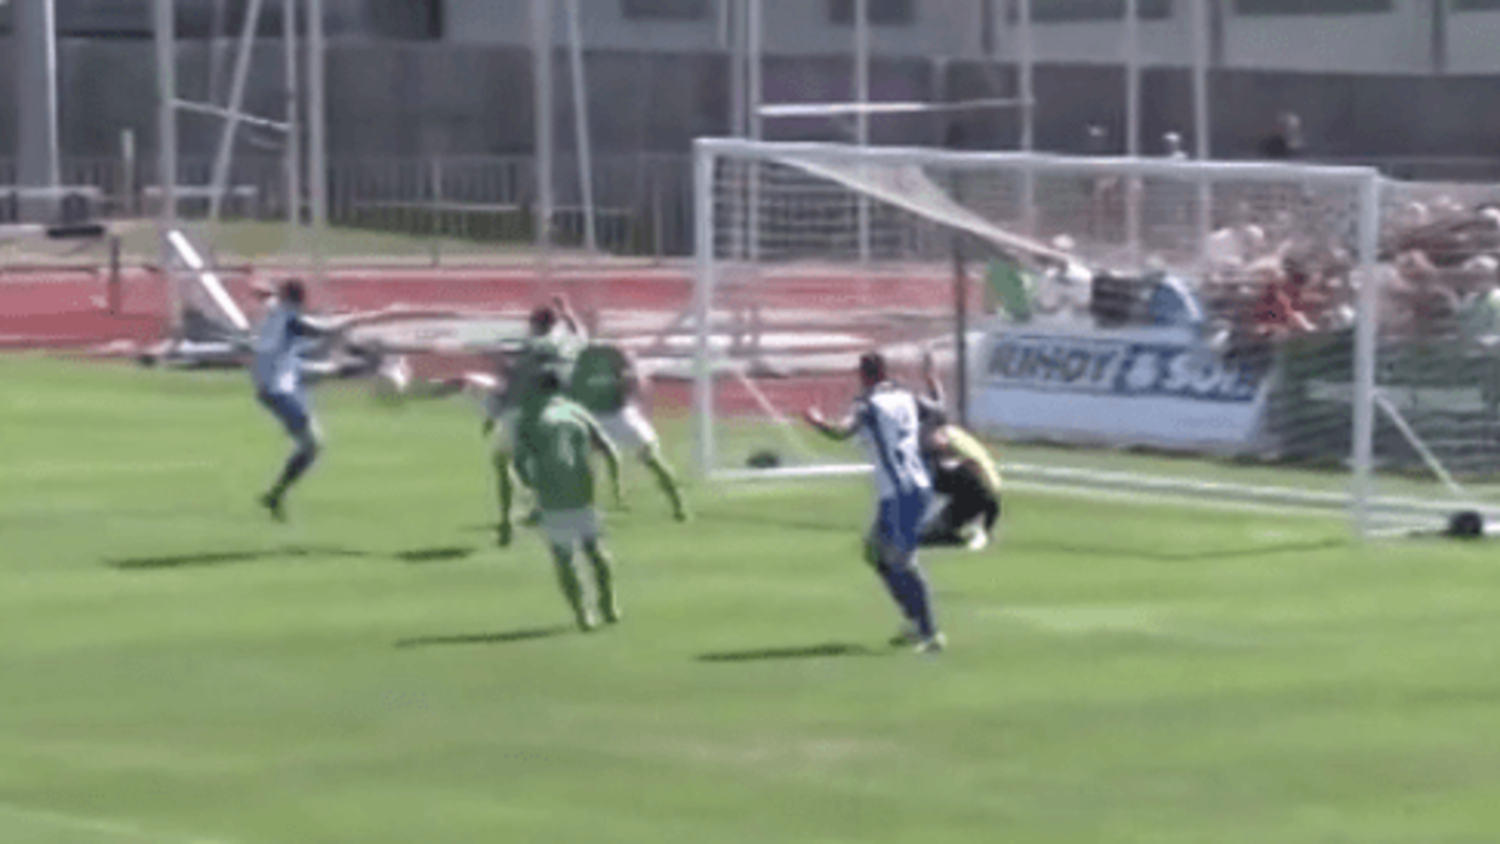 Incredible wind assisted goal scored in FA Cup by Thamesmead FC